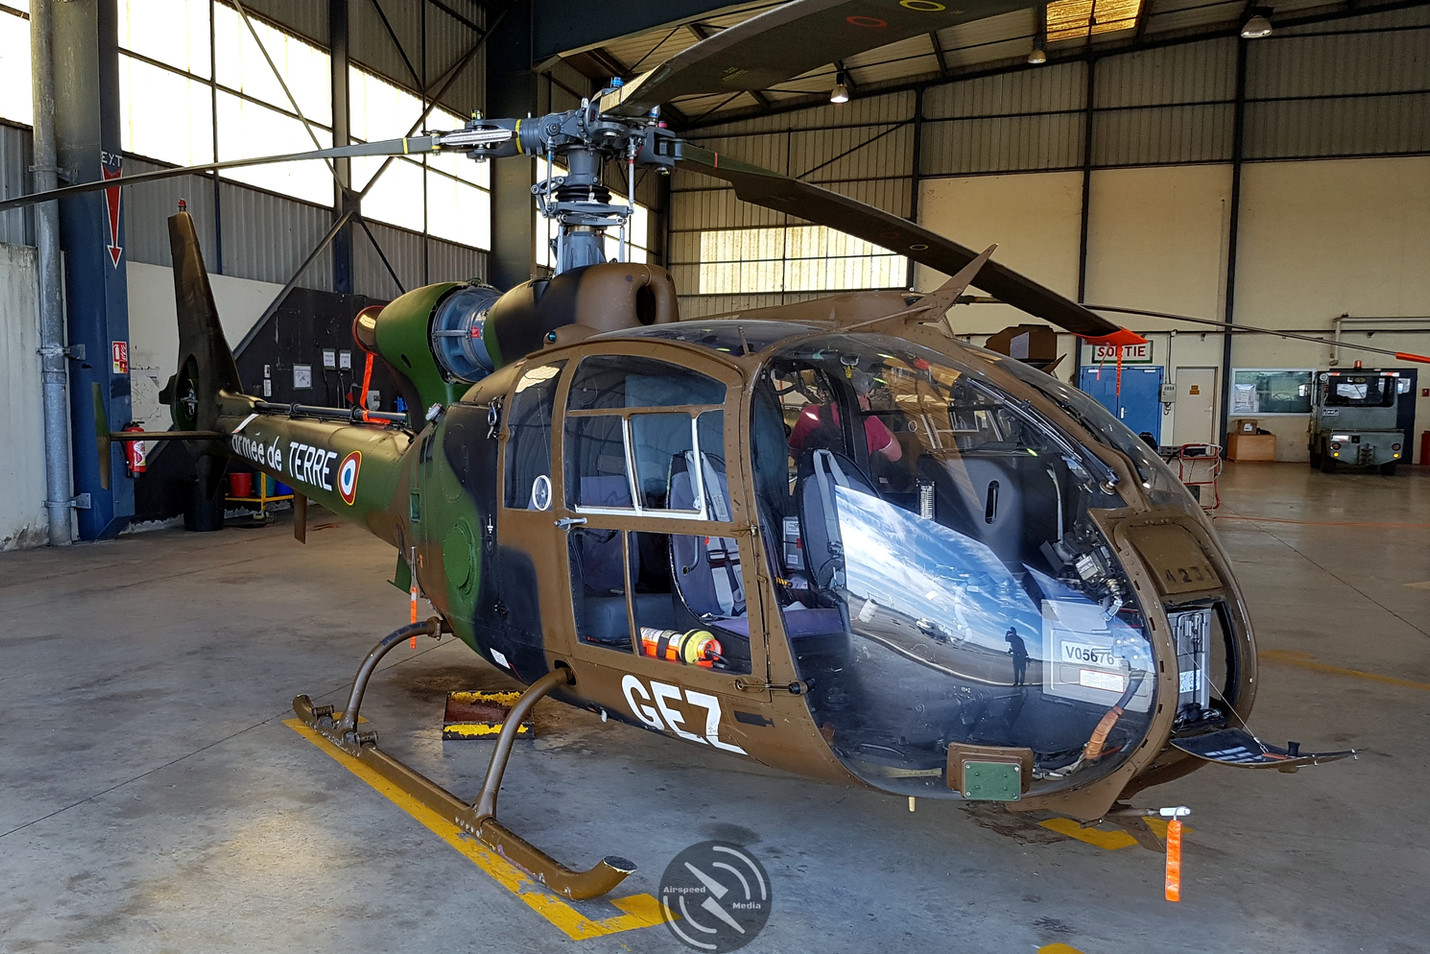 Gazelle ALAT 5th Regiment Pau May 2019